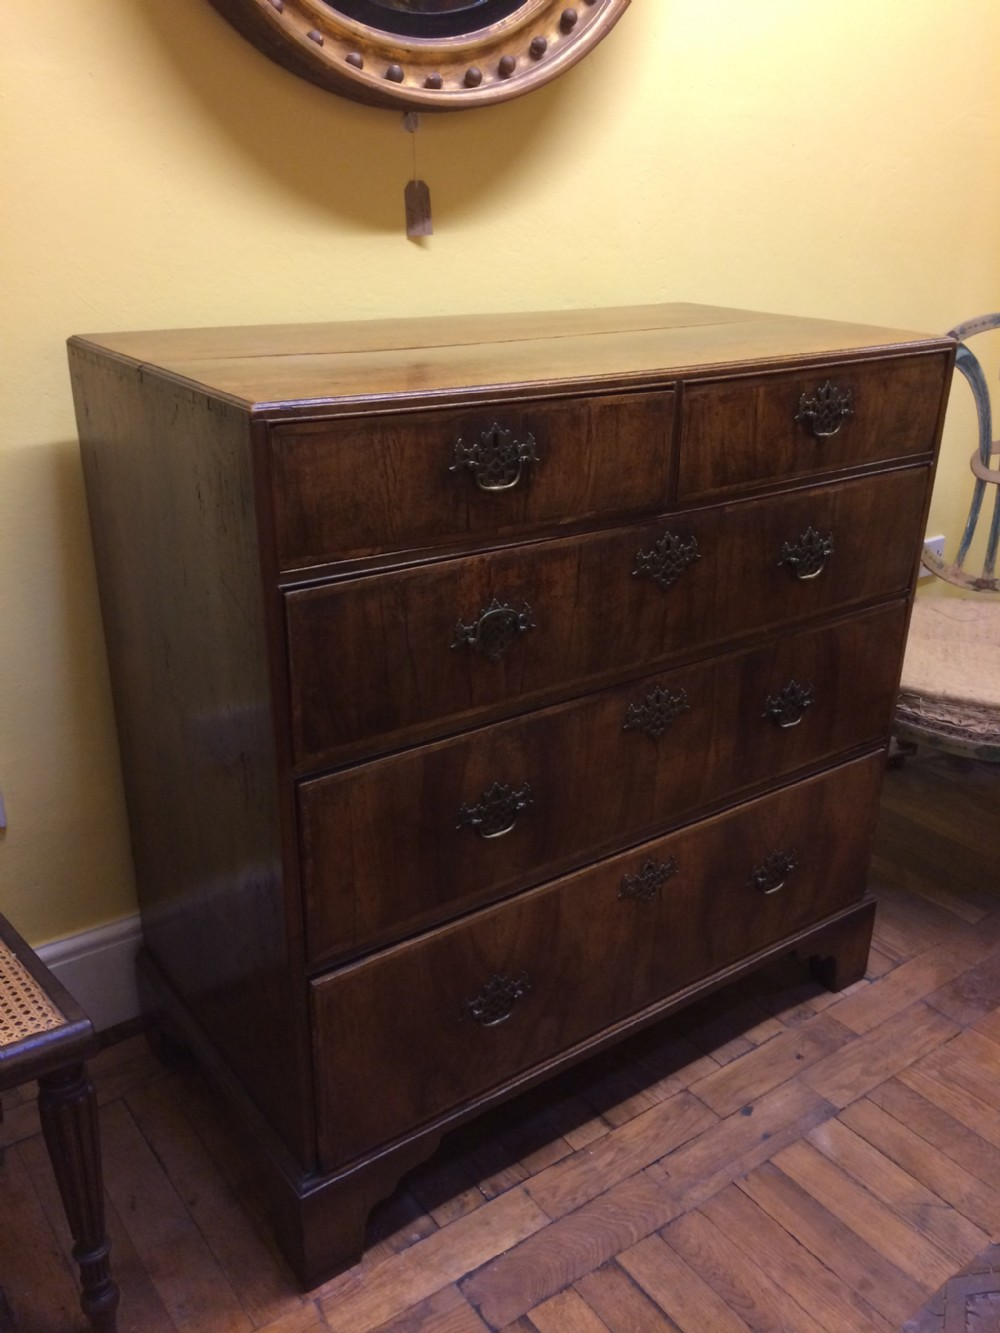 18thc walnut chest of drawers